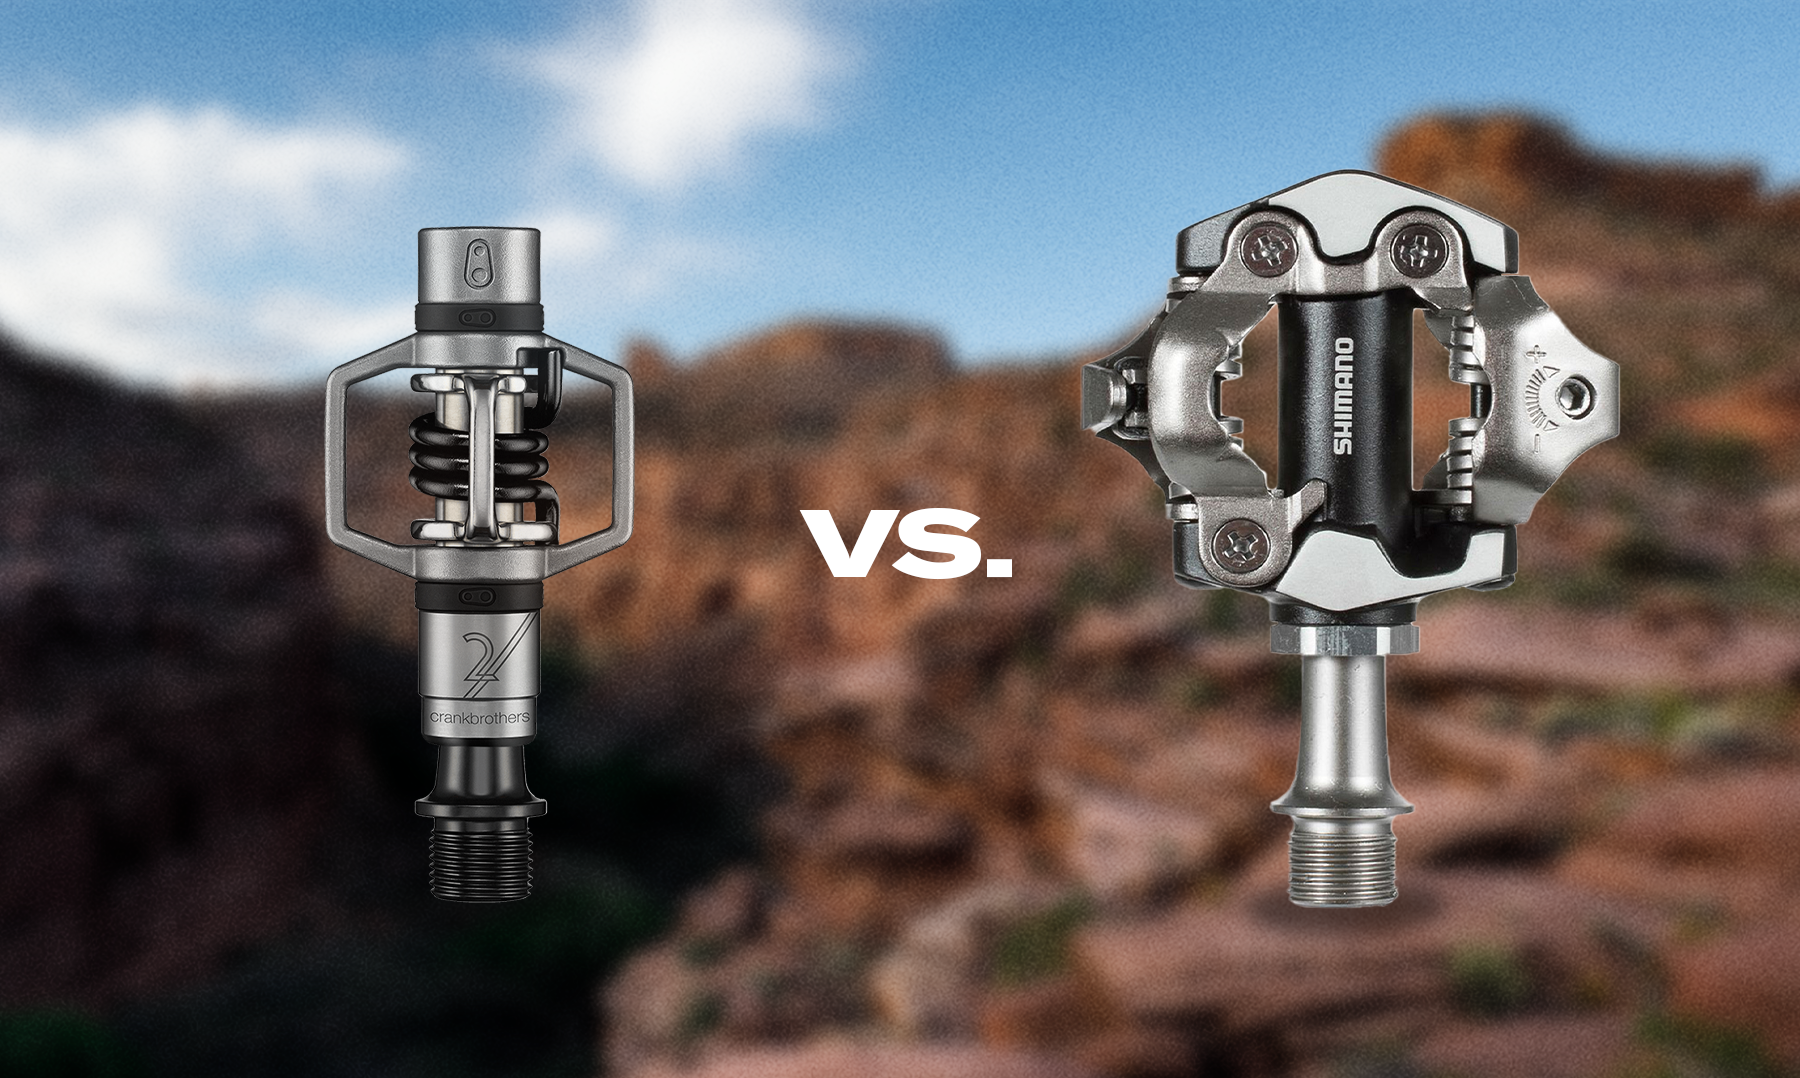 Crankbrothers vs. Shimano clipless mtb pedals